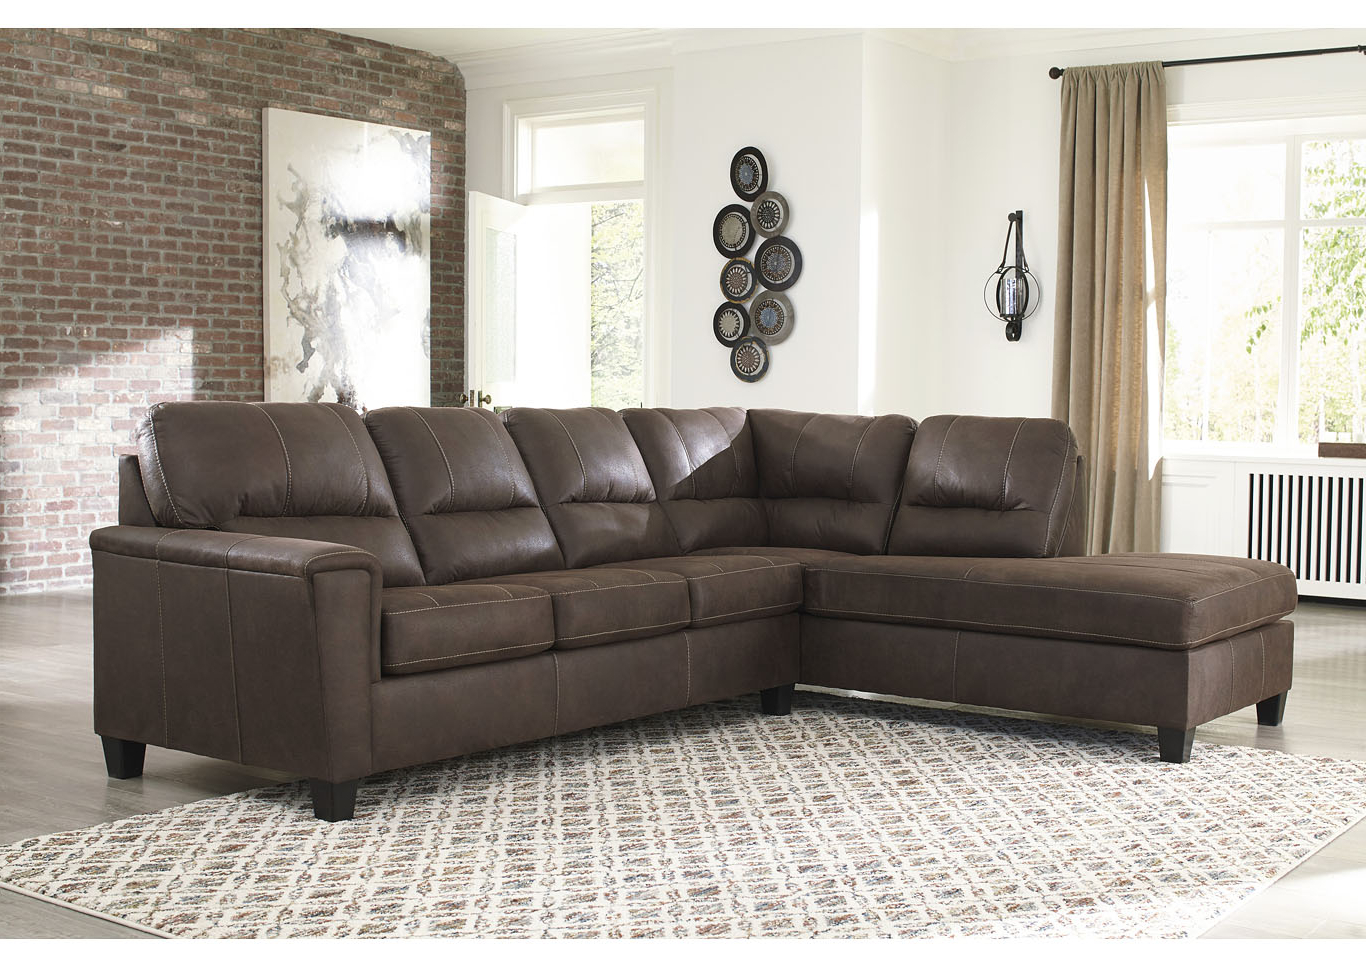 Most Recent 2Pc Maddox Left Arm Facing Sectional Sofas With Chaise Brown Throughout Navi Chestnut Left Arm Facing Sofa Chaise All Brands (View 2 of 25)